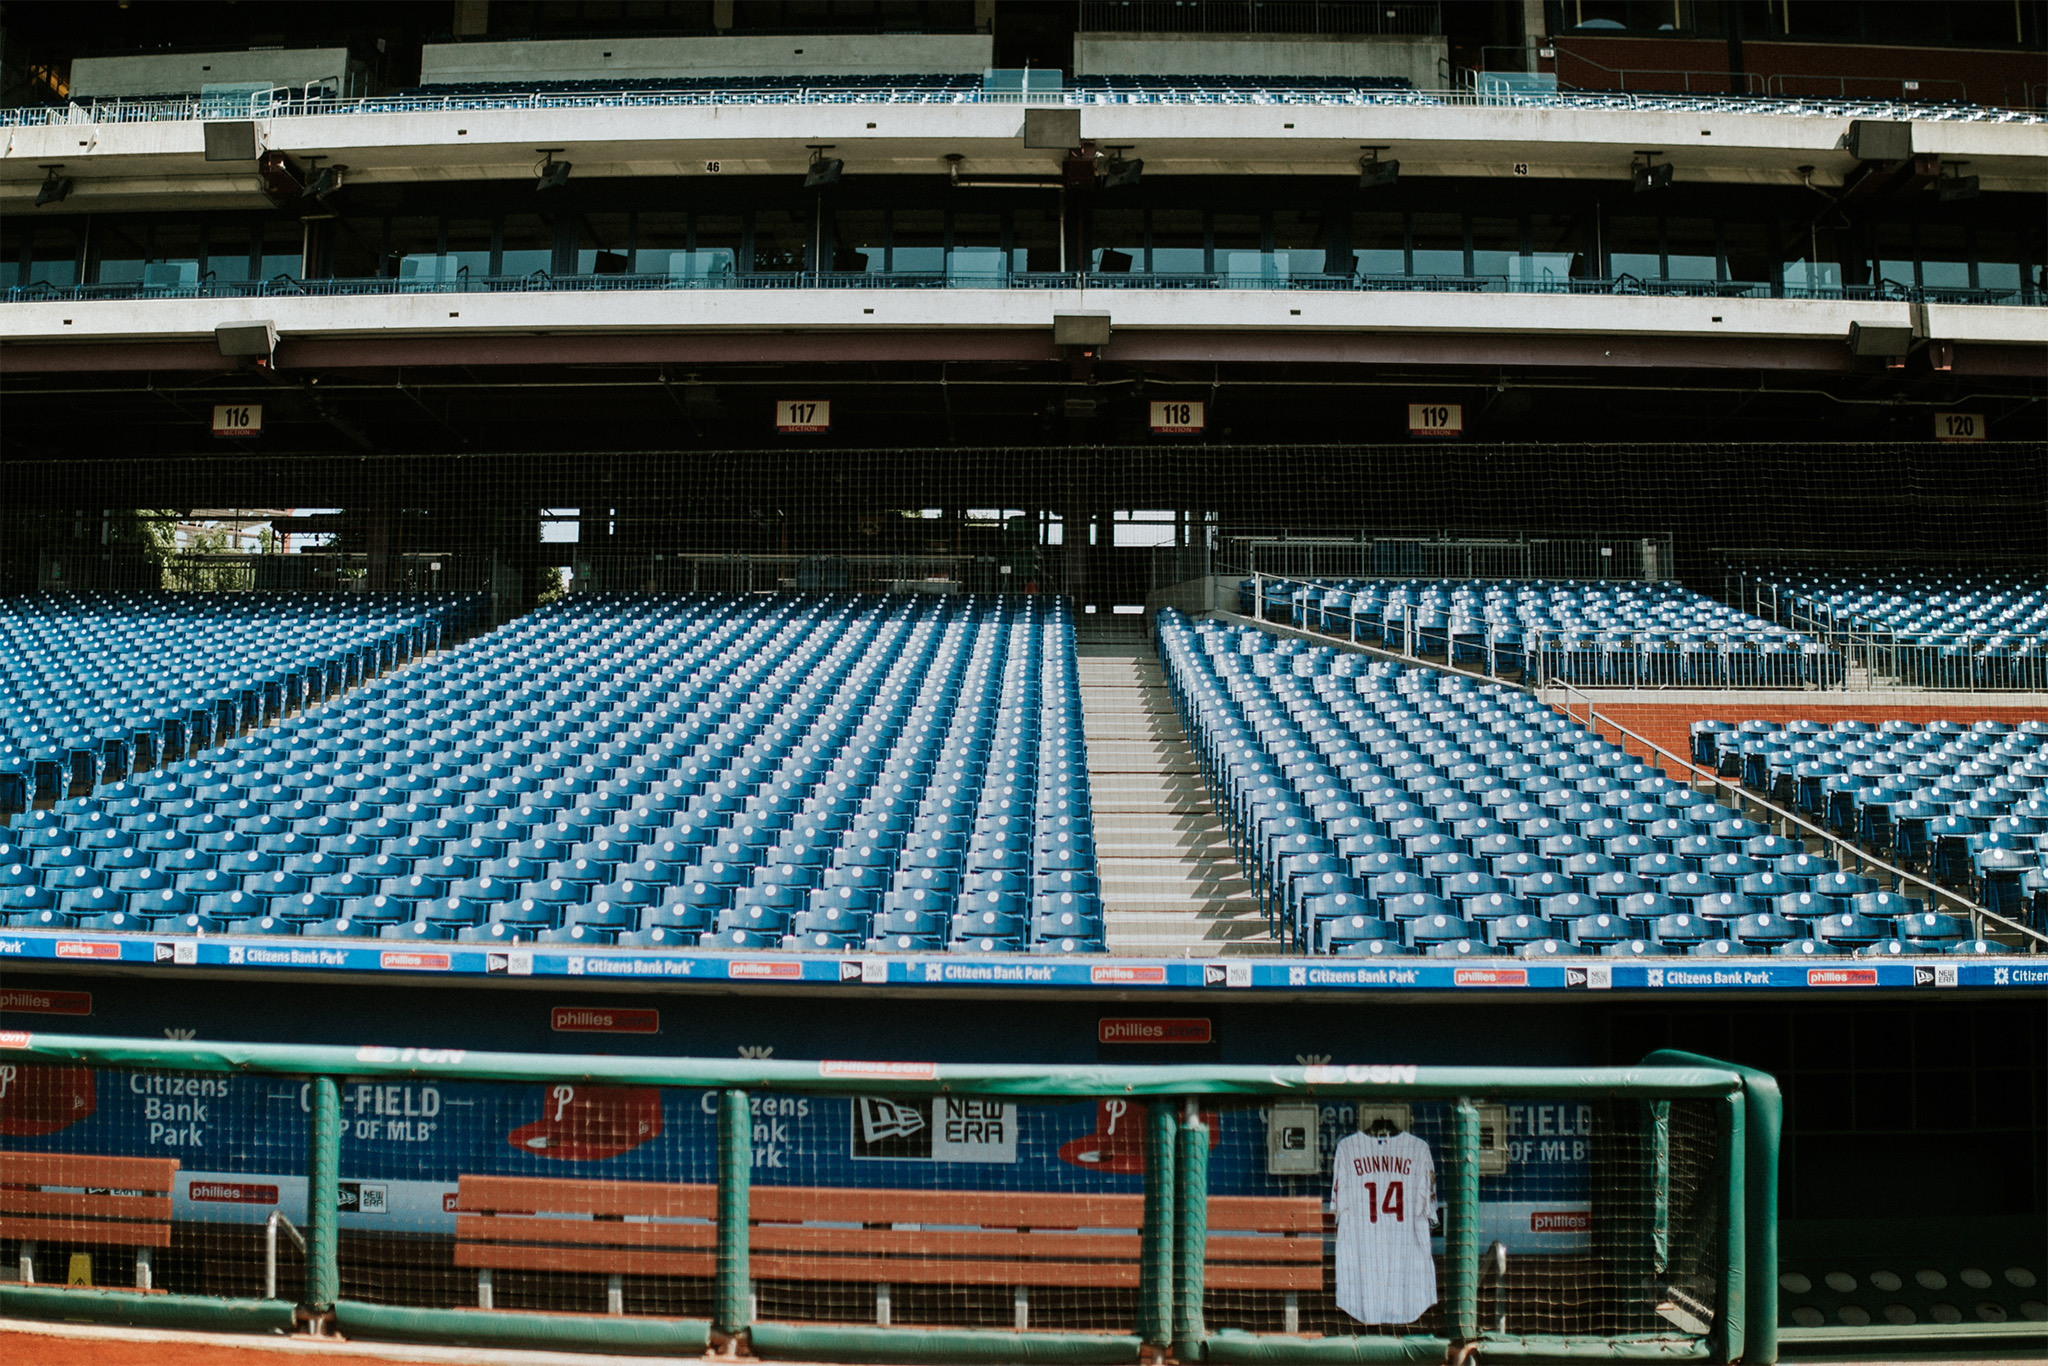 May 31: On May 26, my grandpa, Jim Bunning, passed away. He was a Hall of Fame pitcher, and on my way to pay respects, I was able to go to the Philadelphia Phillies' stadium to pay respects. During a game the weekend after his death, they hung his jersey in the dugout, and the team graciously allowed me to hang his jersey again to take some photos for myself and my grandma. It felt like a fitting way to honor my grandpa. He loved the game.